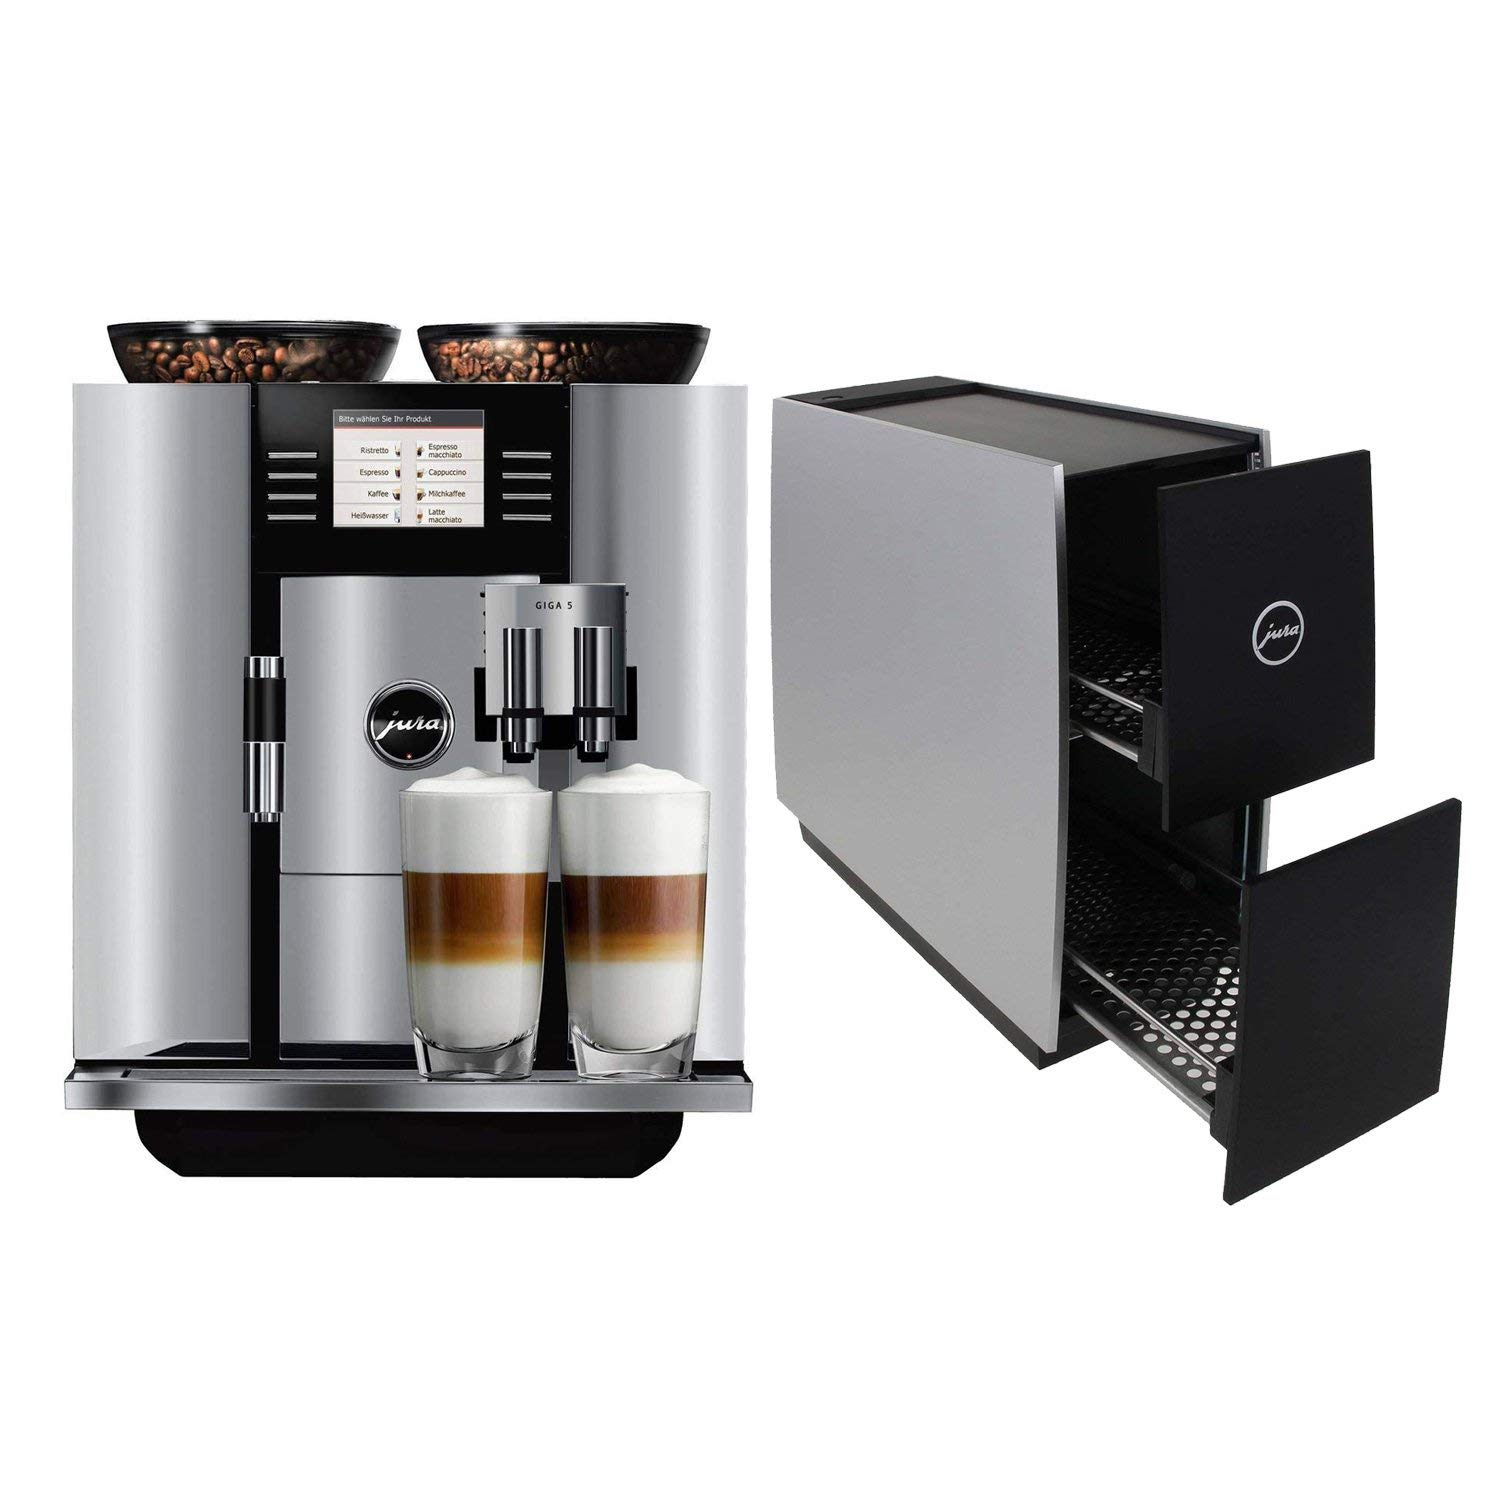 Jura 13623 Giga 5 Automatic Coffee Machine, Aluminum with Jura 72229 Cup Warmer, Black